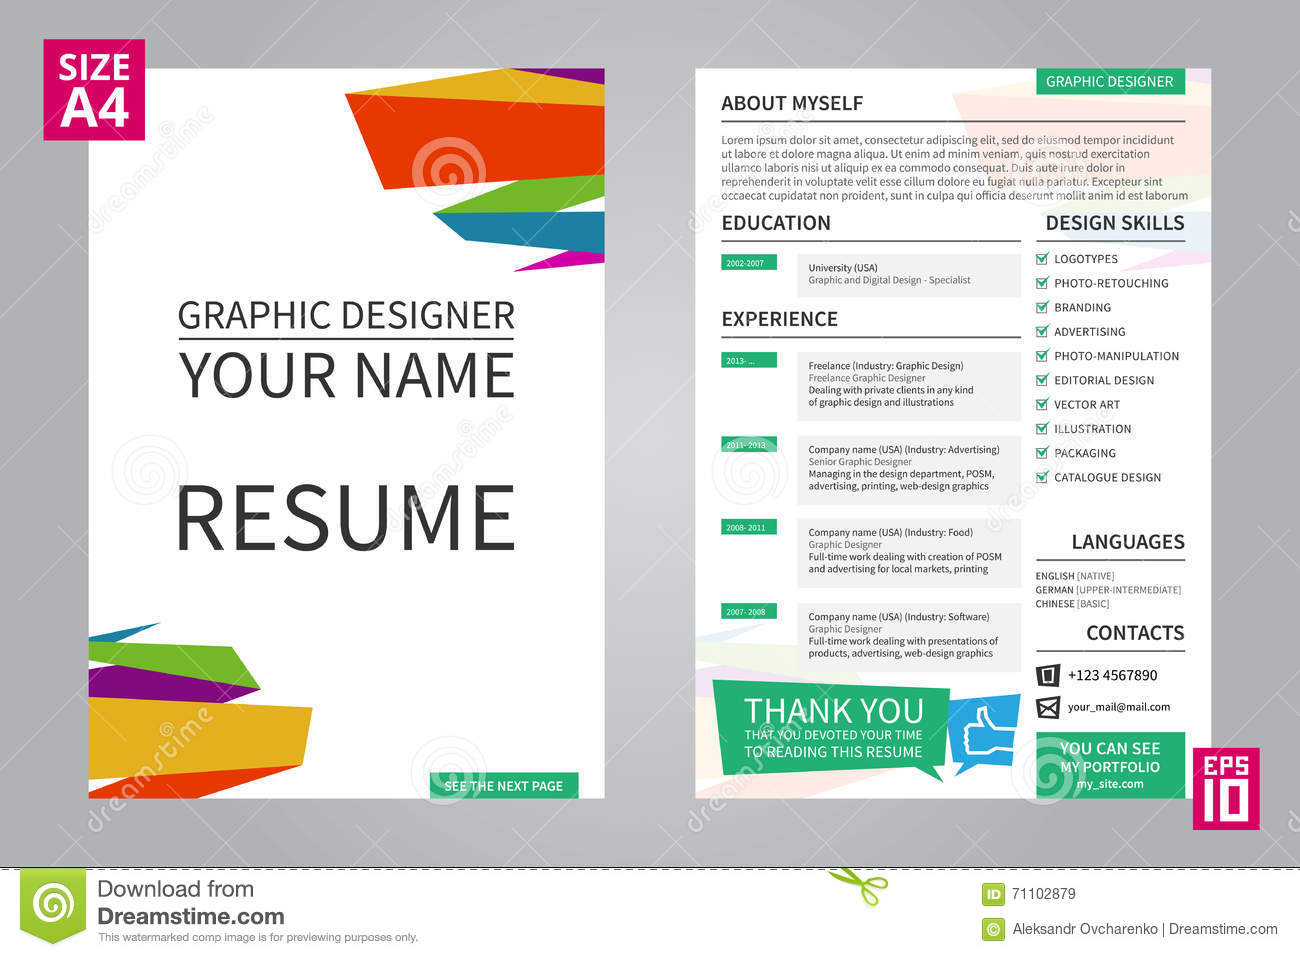 resume graphic designer stock vector  illustration of hiring